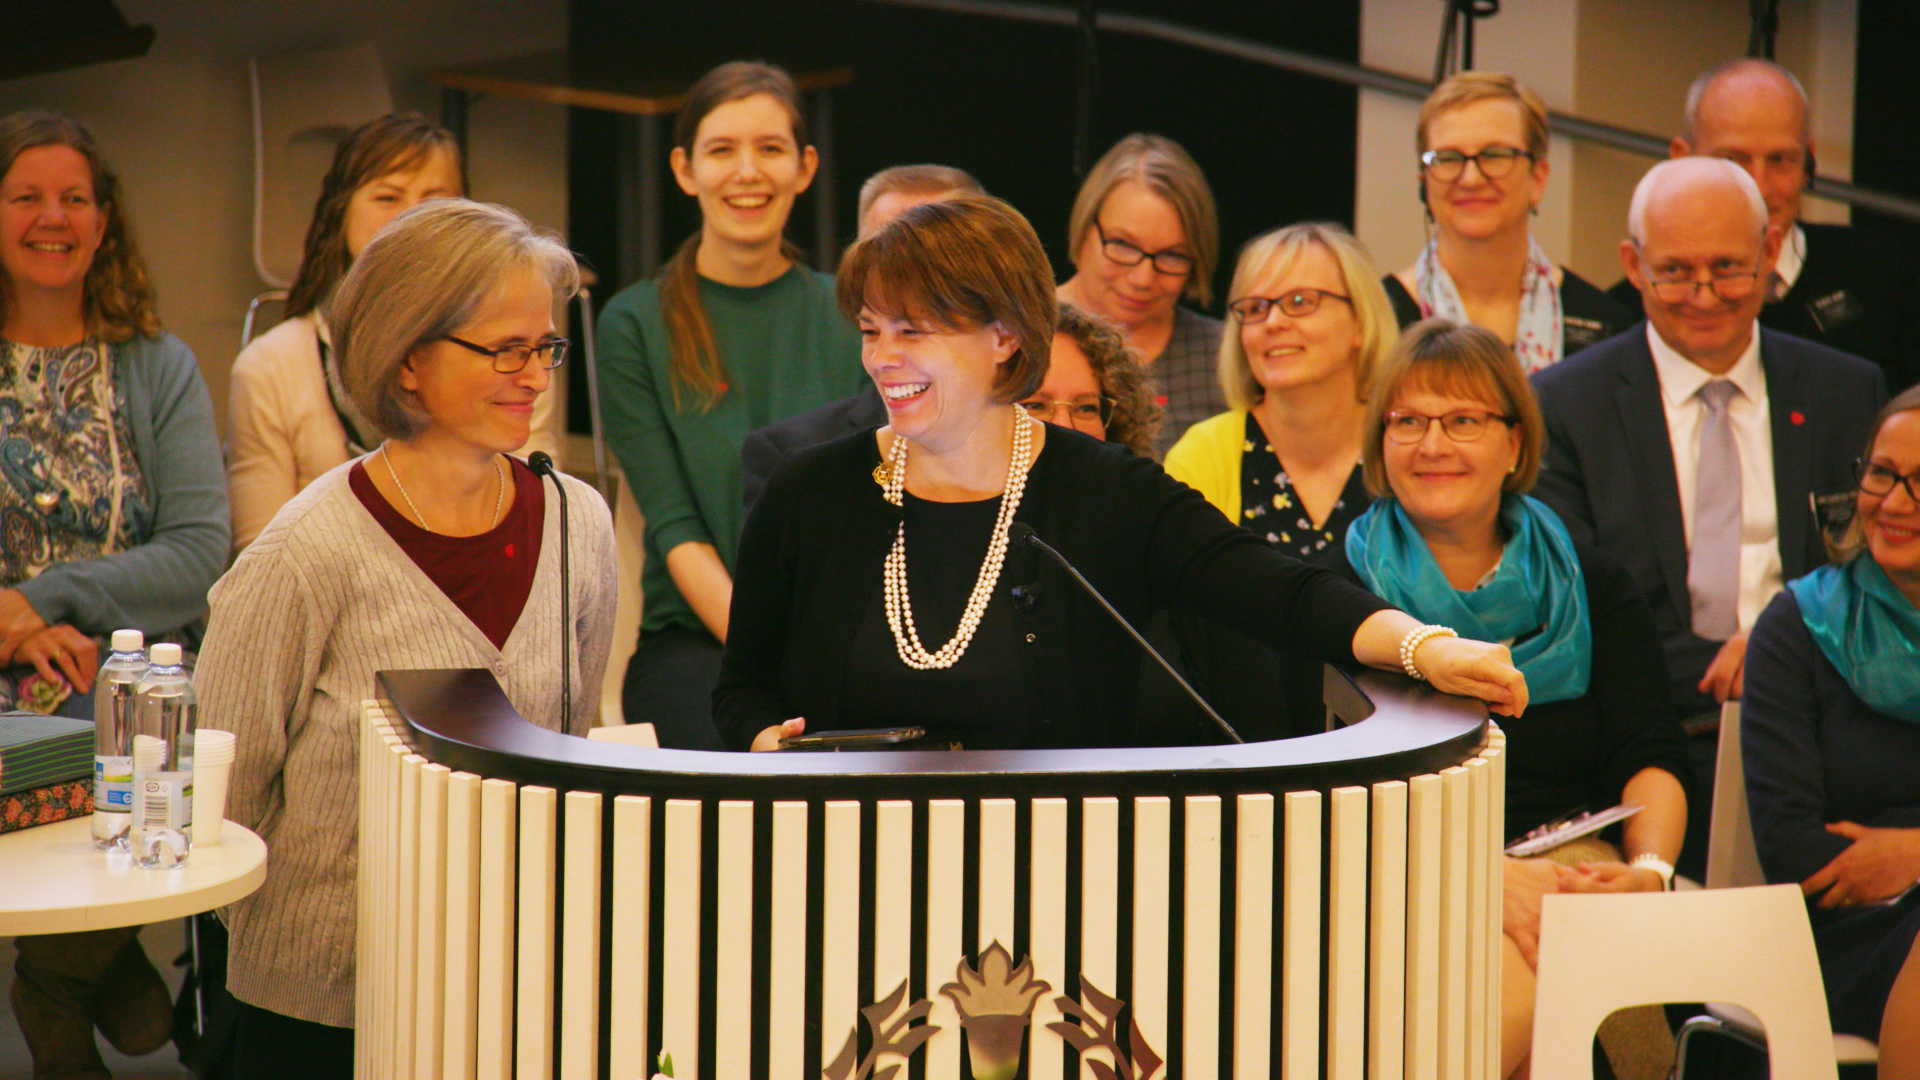 Sister Sharon Eubank of the Relief Society general presidency speaks in Finnish at a national women's conference in Tampere, Finland, Saturday, September 21, 2019.